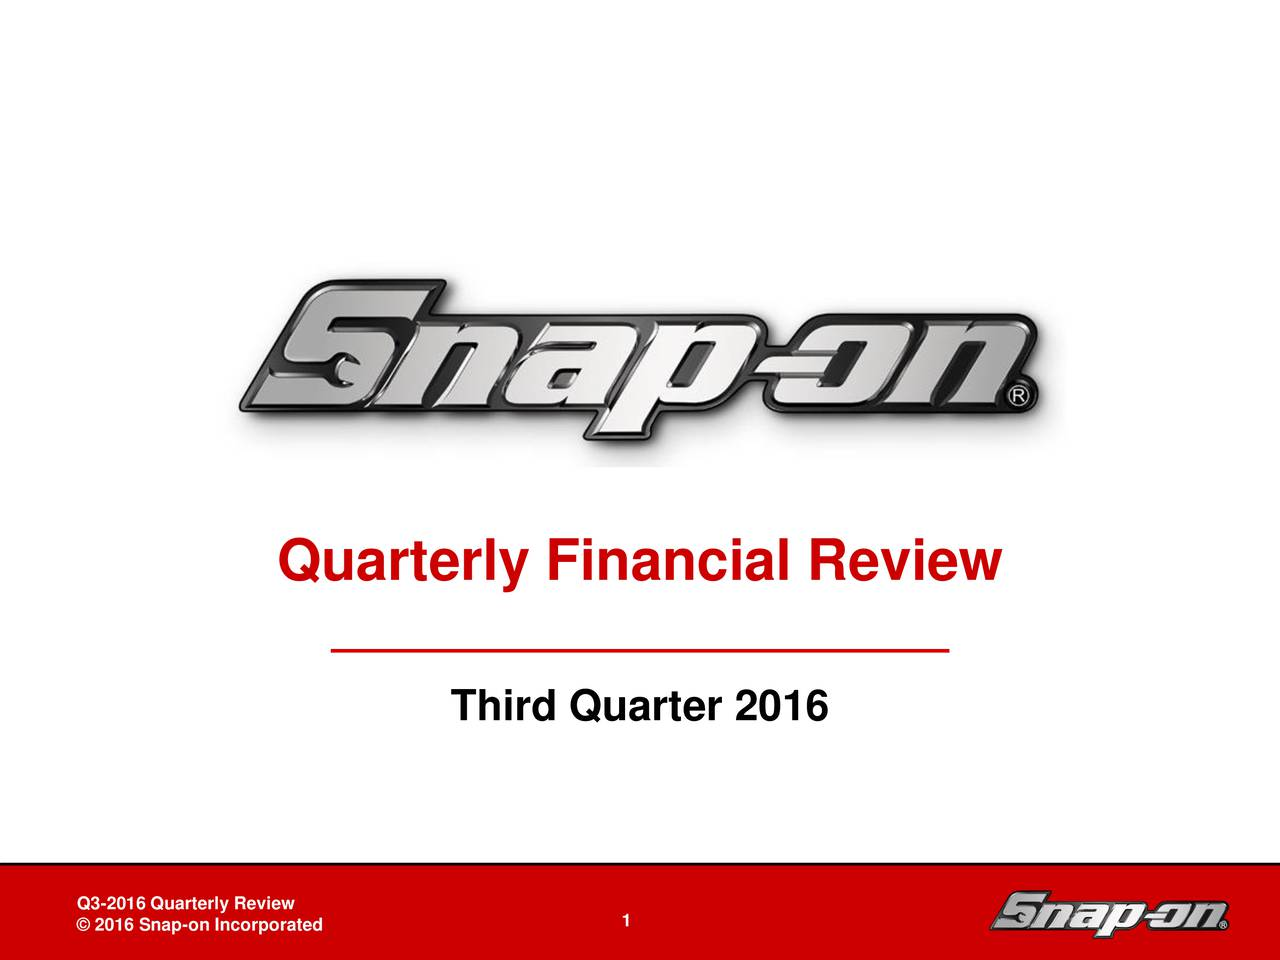 Third Quarter 2016 Snap-on Tools In-Depth Business Review Board of Directorsy Review DB-2 - 1 1April 27, 2011on Incorporated 1